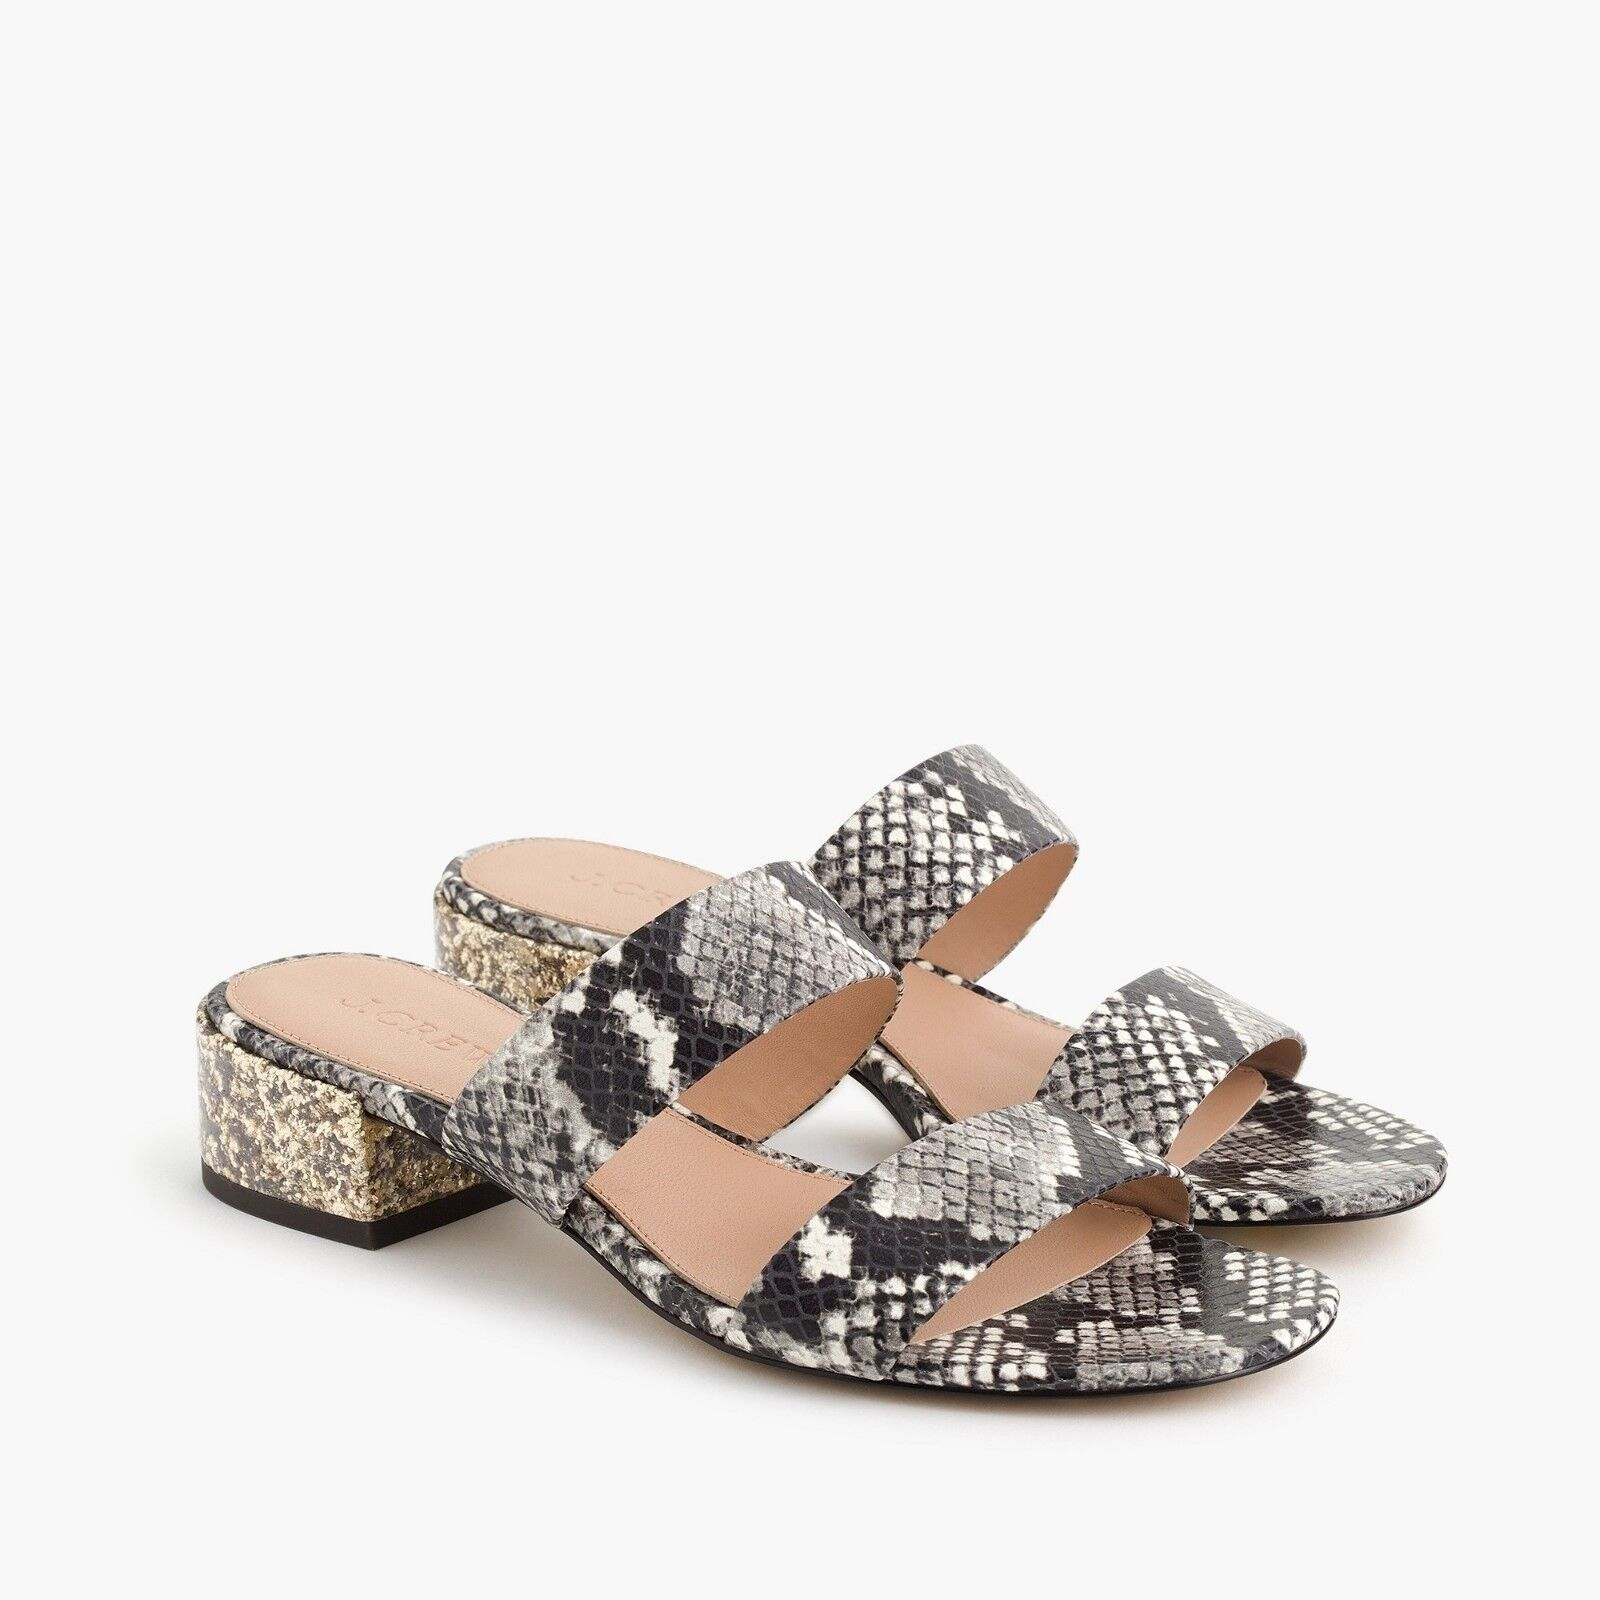 J.Crew TWO-STRAP LEATHER SLIDE SANDALS IN FAUX SNAKESKIN J2599 6H 7H 8 8H 9H 10